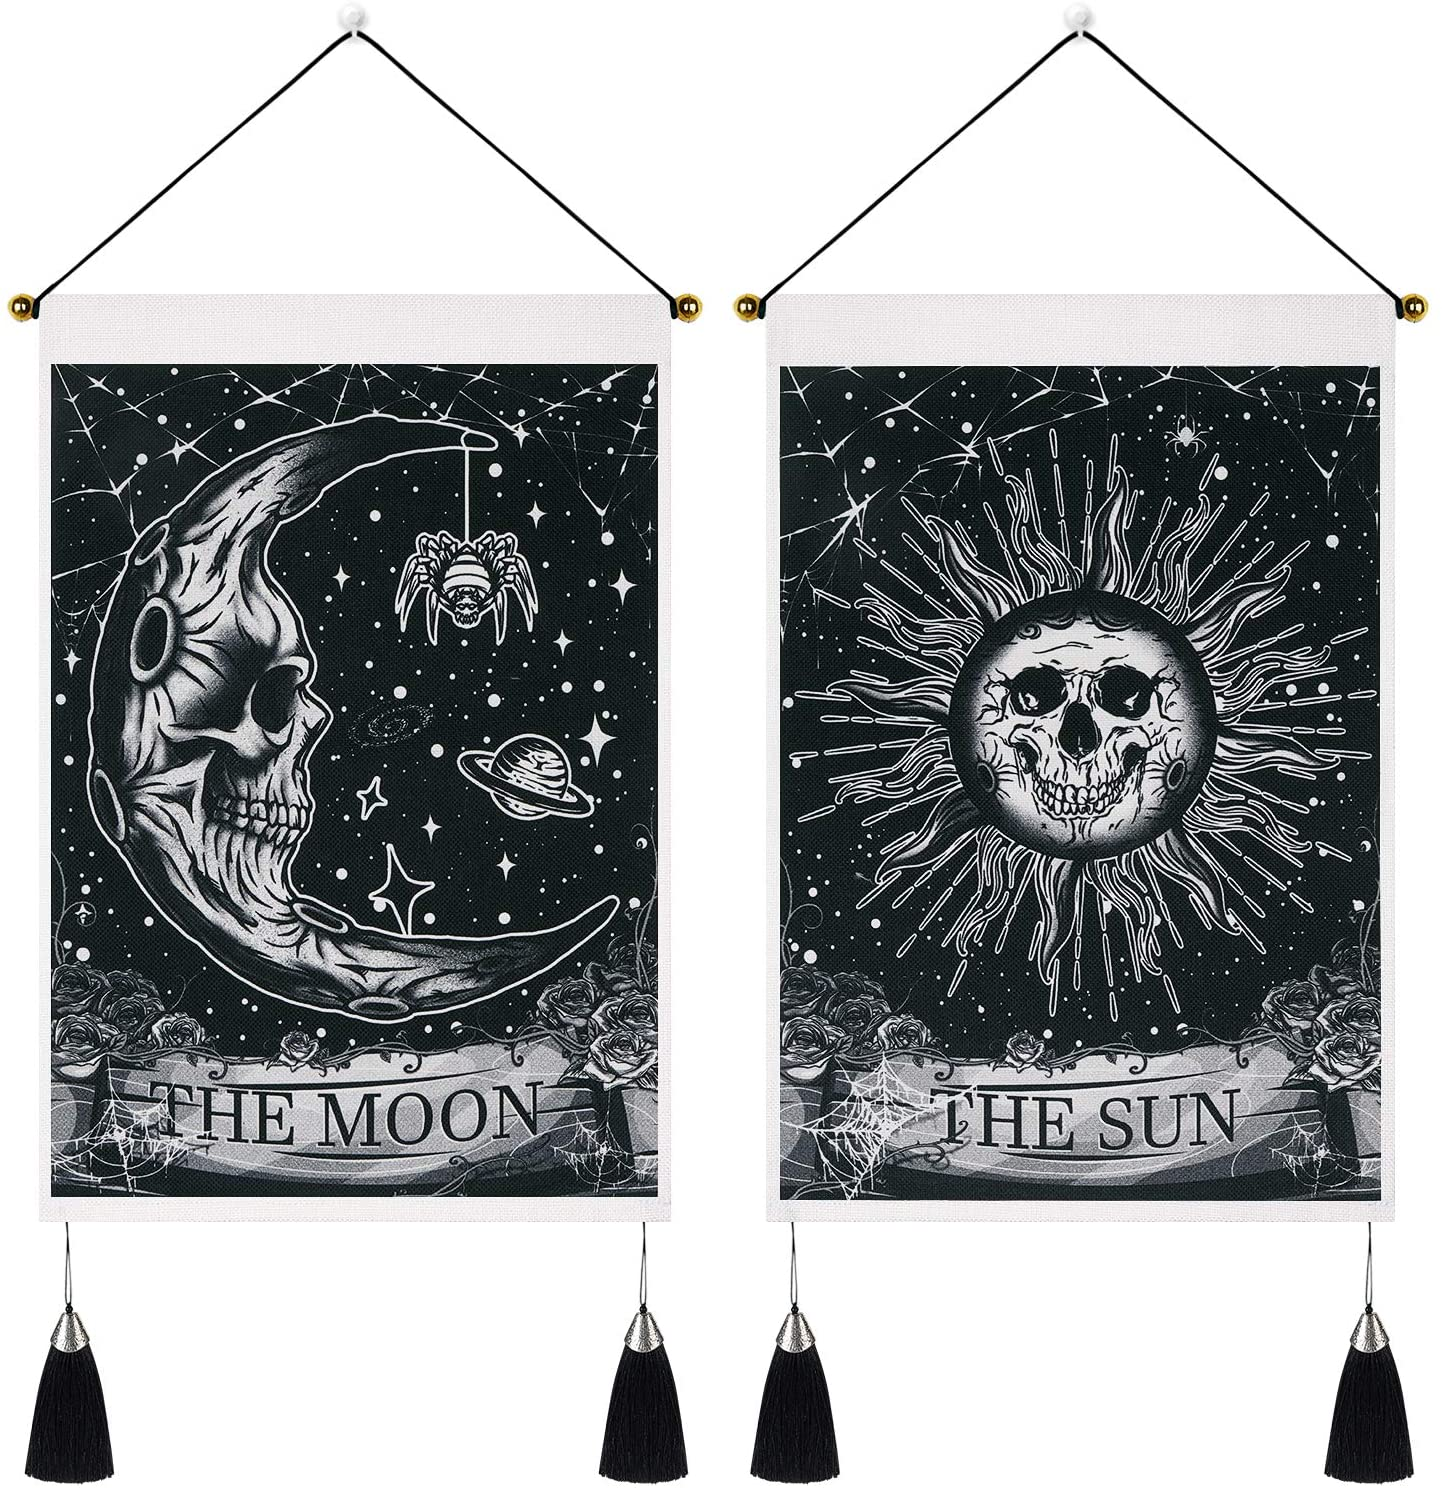 Pack of 2 Moon and Sun Tarot Card Tapestry The Sun Moon Tapestry Skull Floral Tapestry Psychedelic Stars Spider Insect Tapestries Black Celestial Tapestry Wall Hanging for Room(13.8 x 19.7 inches)